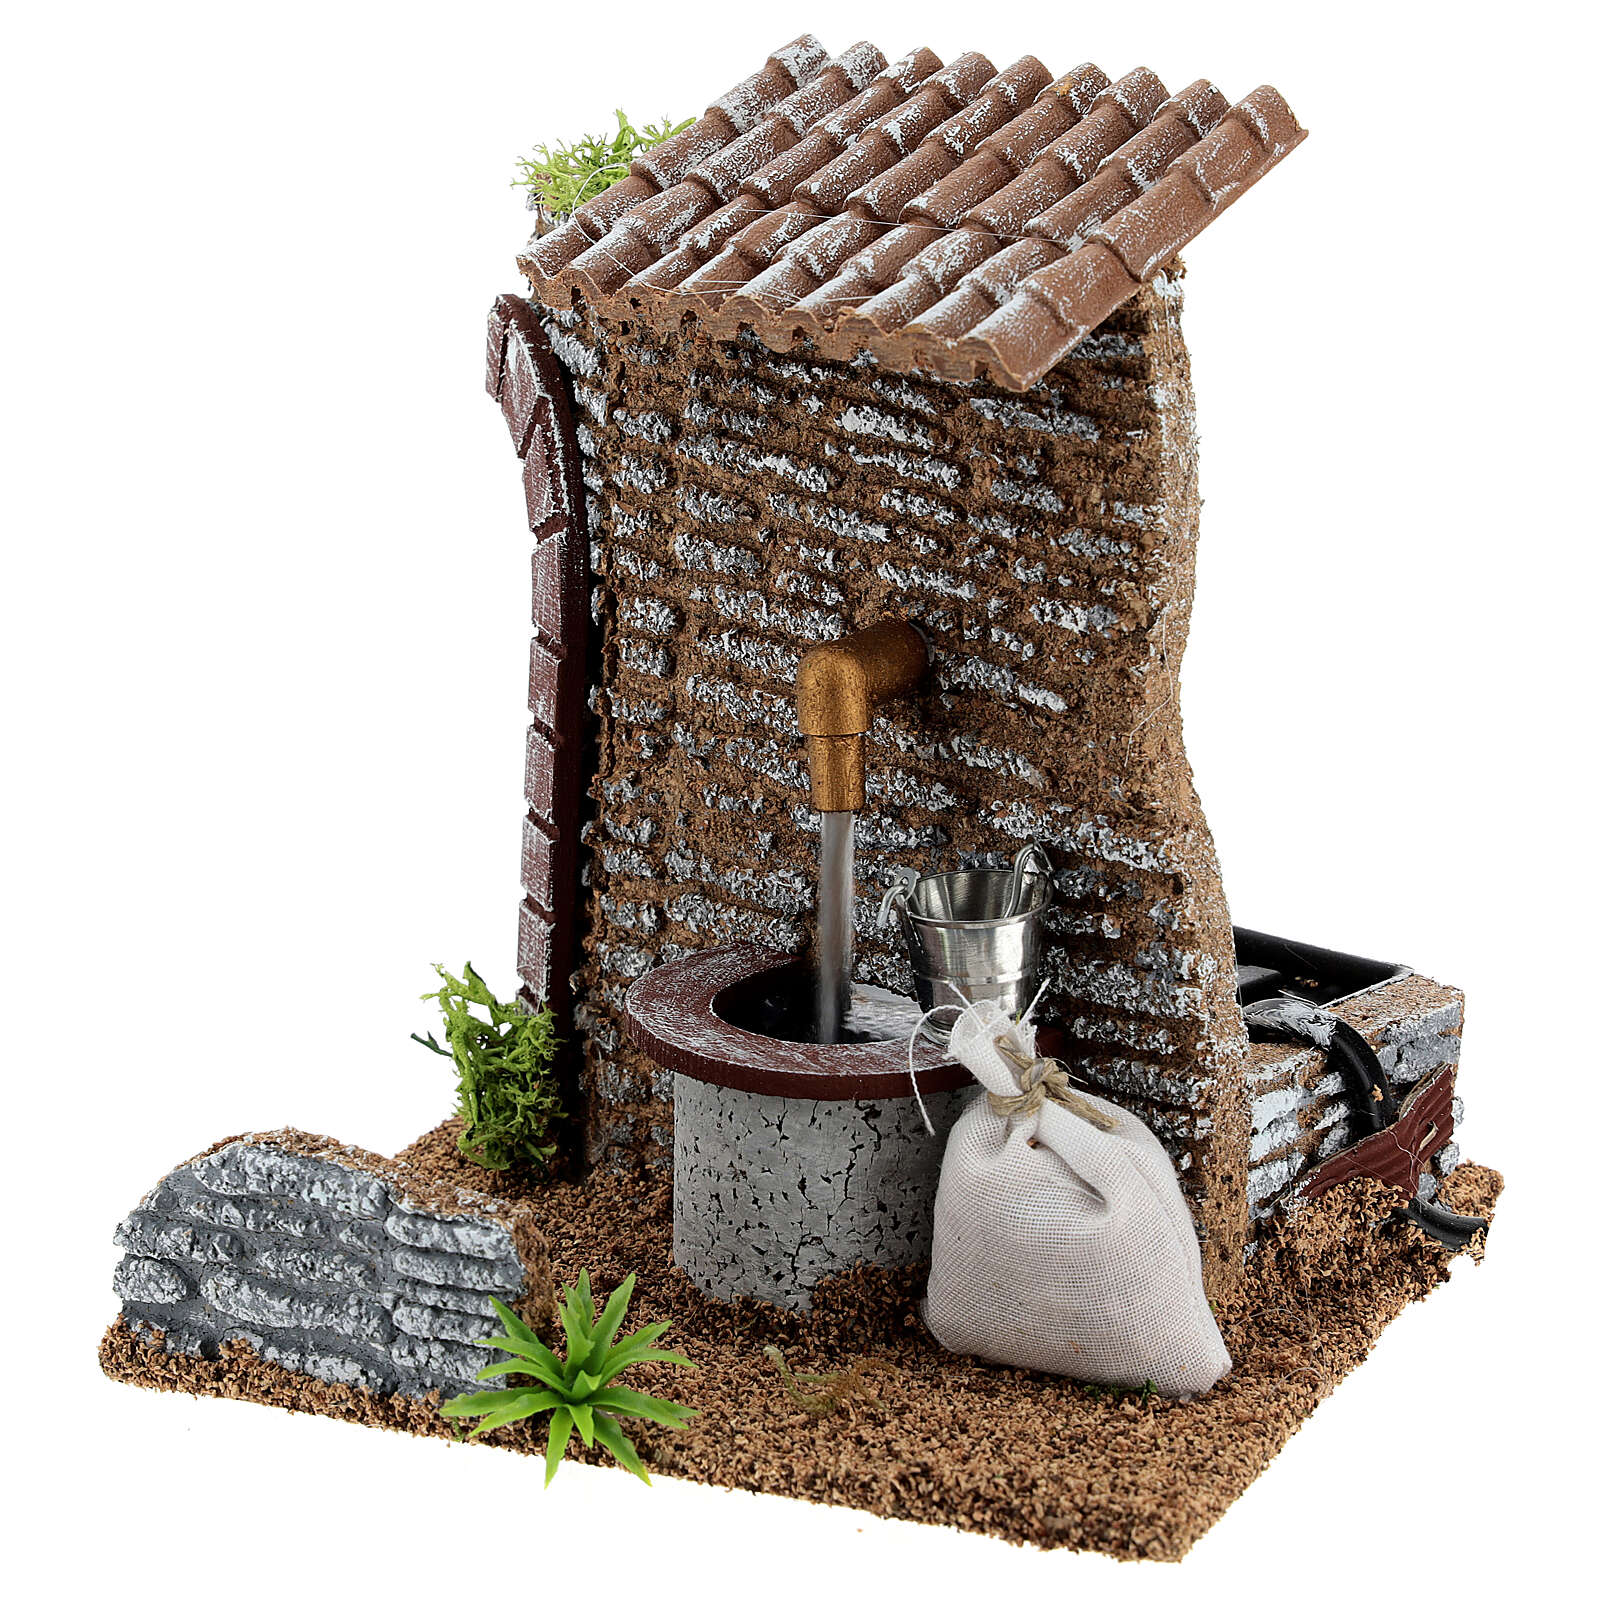 Fountain figure with pump, 15x15x15 cm for 8-10 cm nativity 4